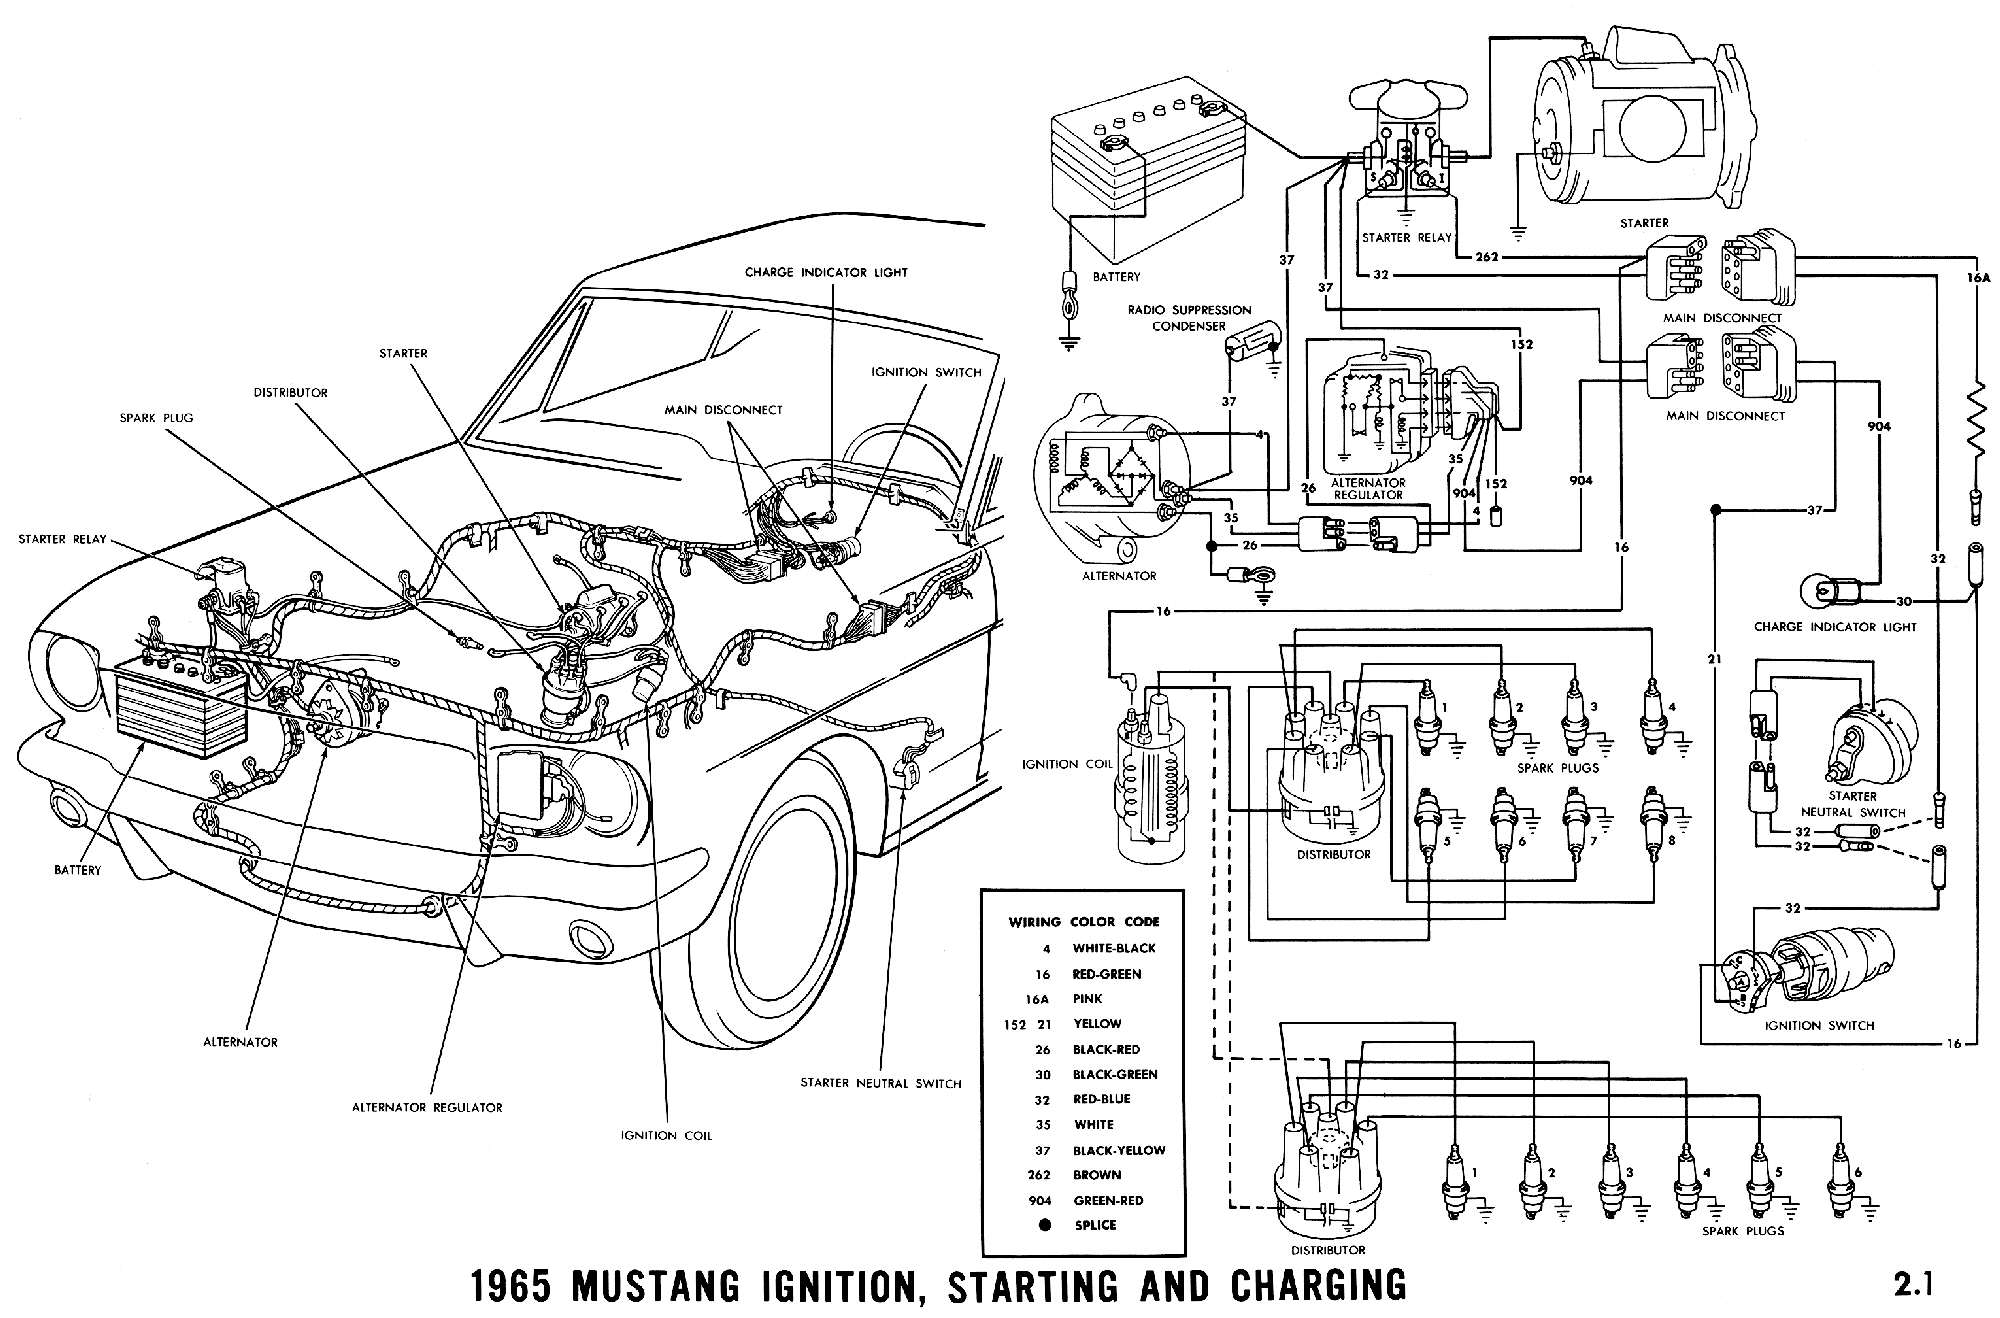 1965c 1965 mustang wiring diagrams average joe restoration 65 mustang alternator wiring diagram at soozxer.org